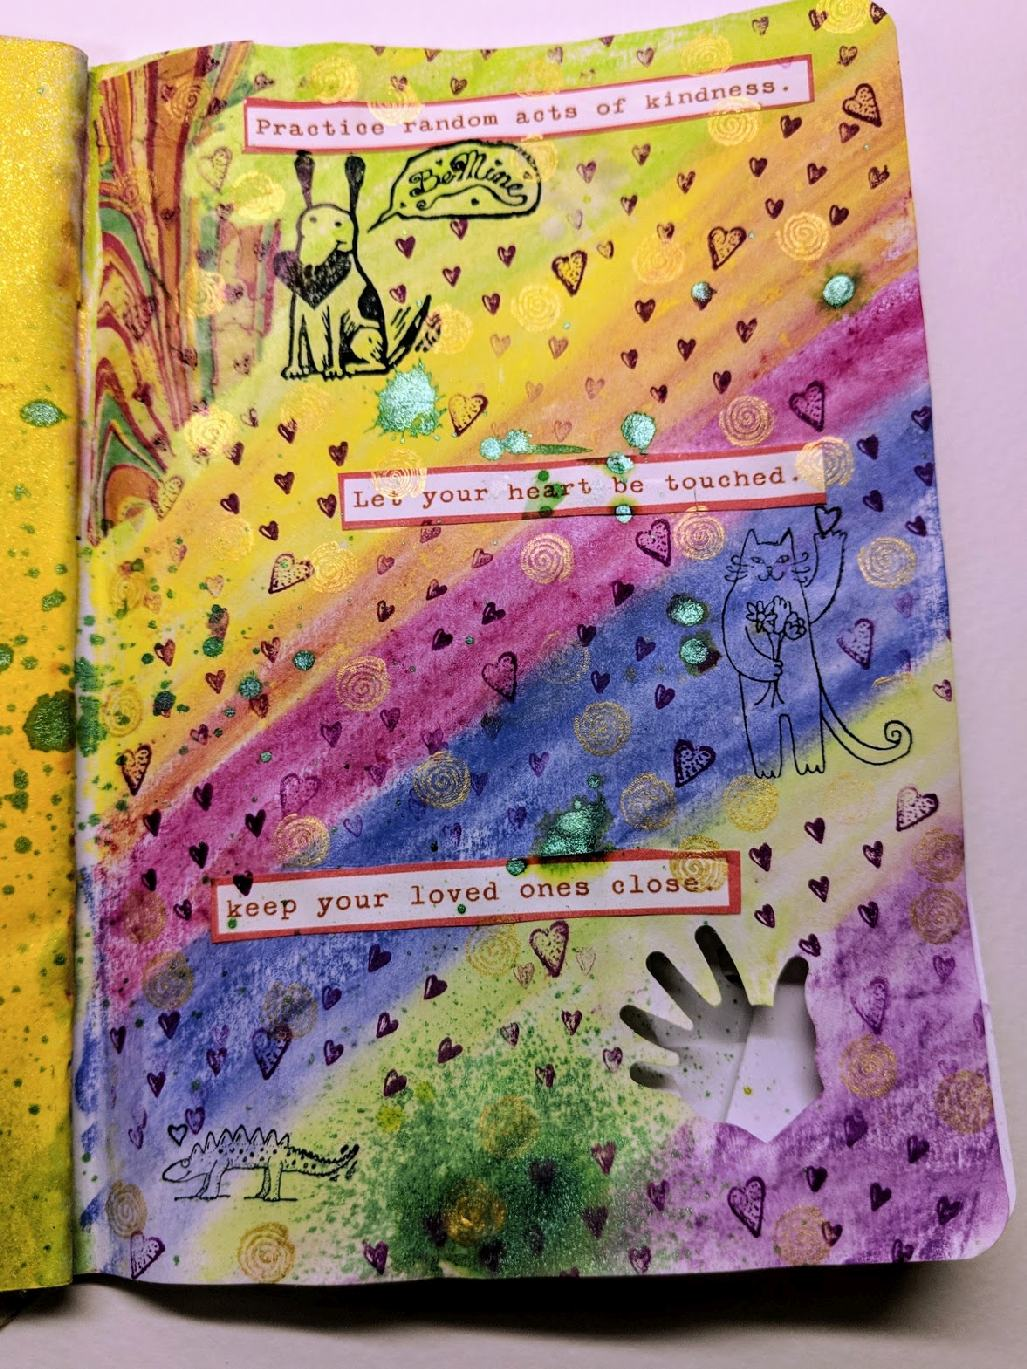 46: The Sketchbook Project